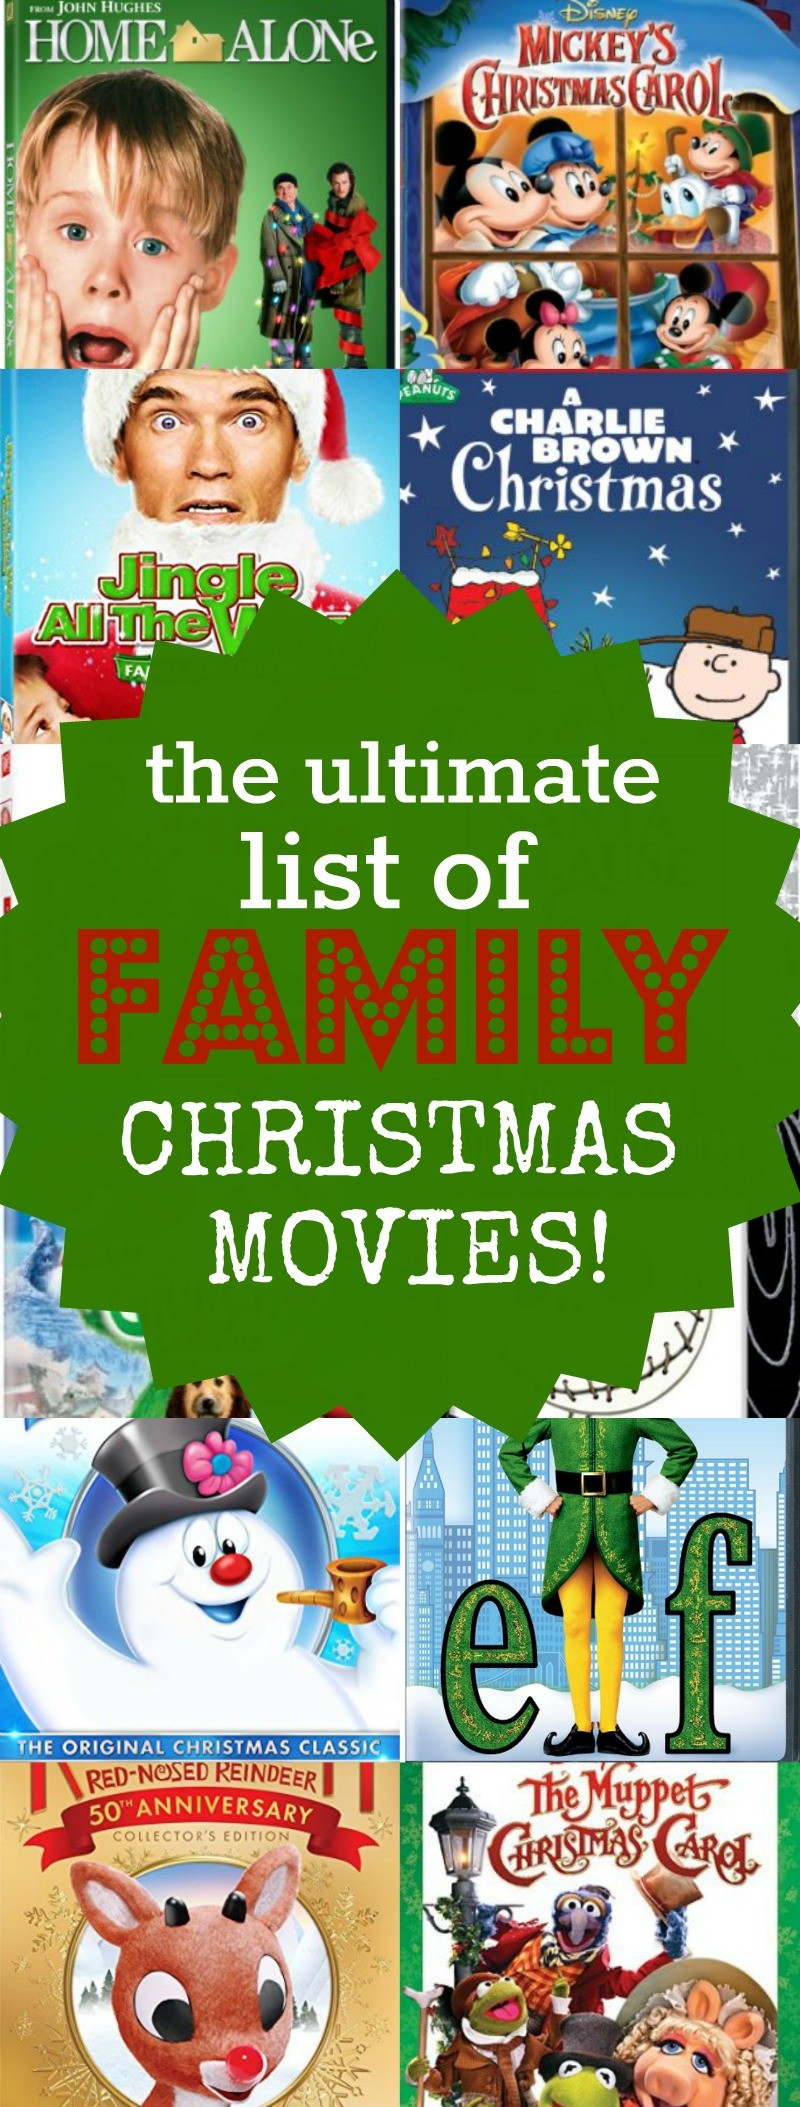 the top 22 ultimate list of family christmas movies to watch together